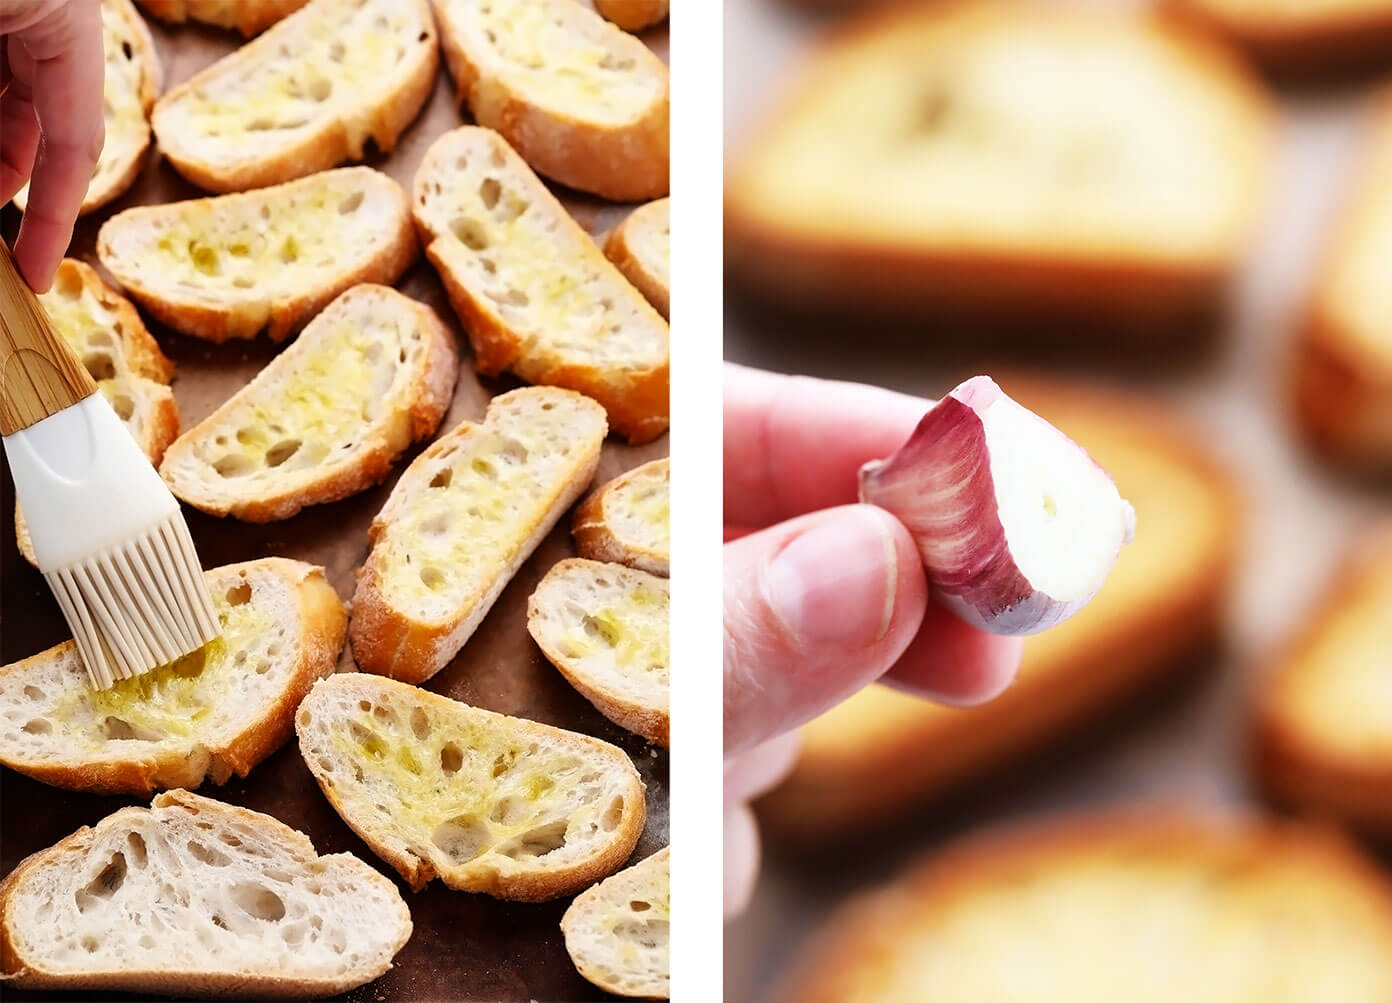 How to make bruschetta -- brushing the toast with olive oil and garlic